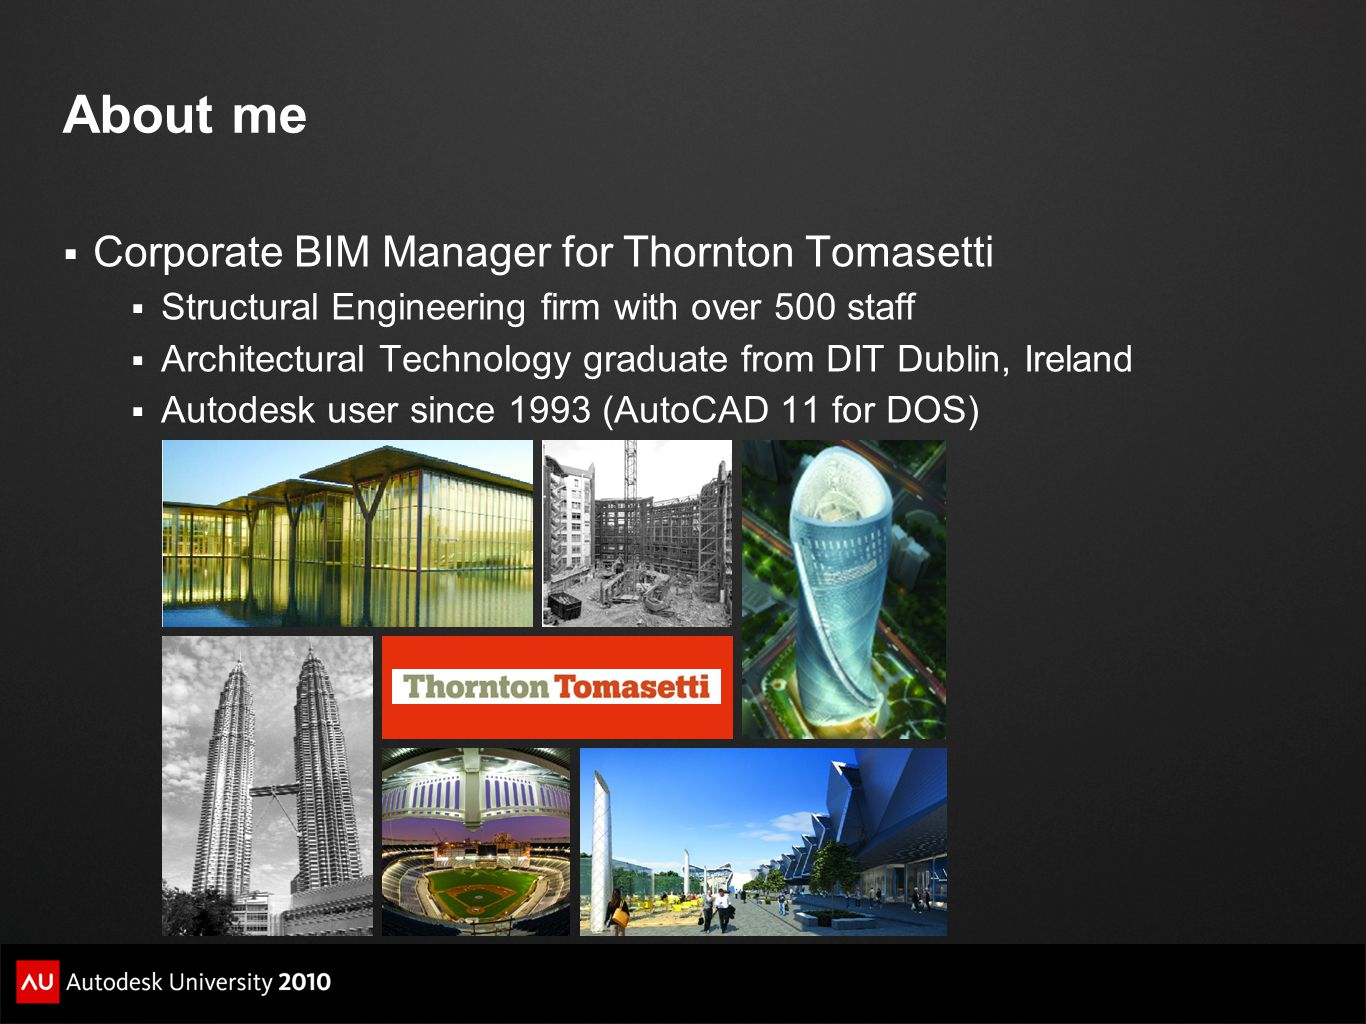 About me Corporate BIM Manager for Thornton Tomasetti